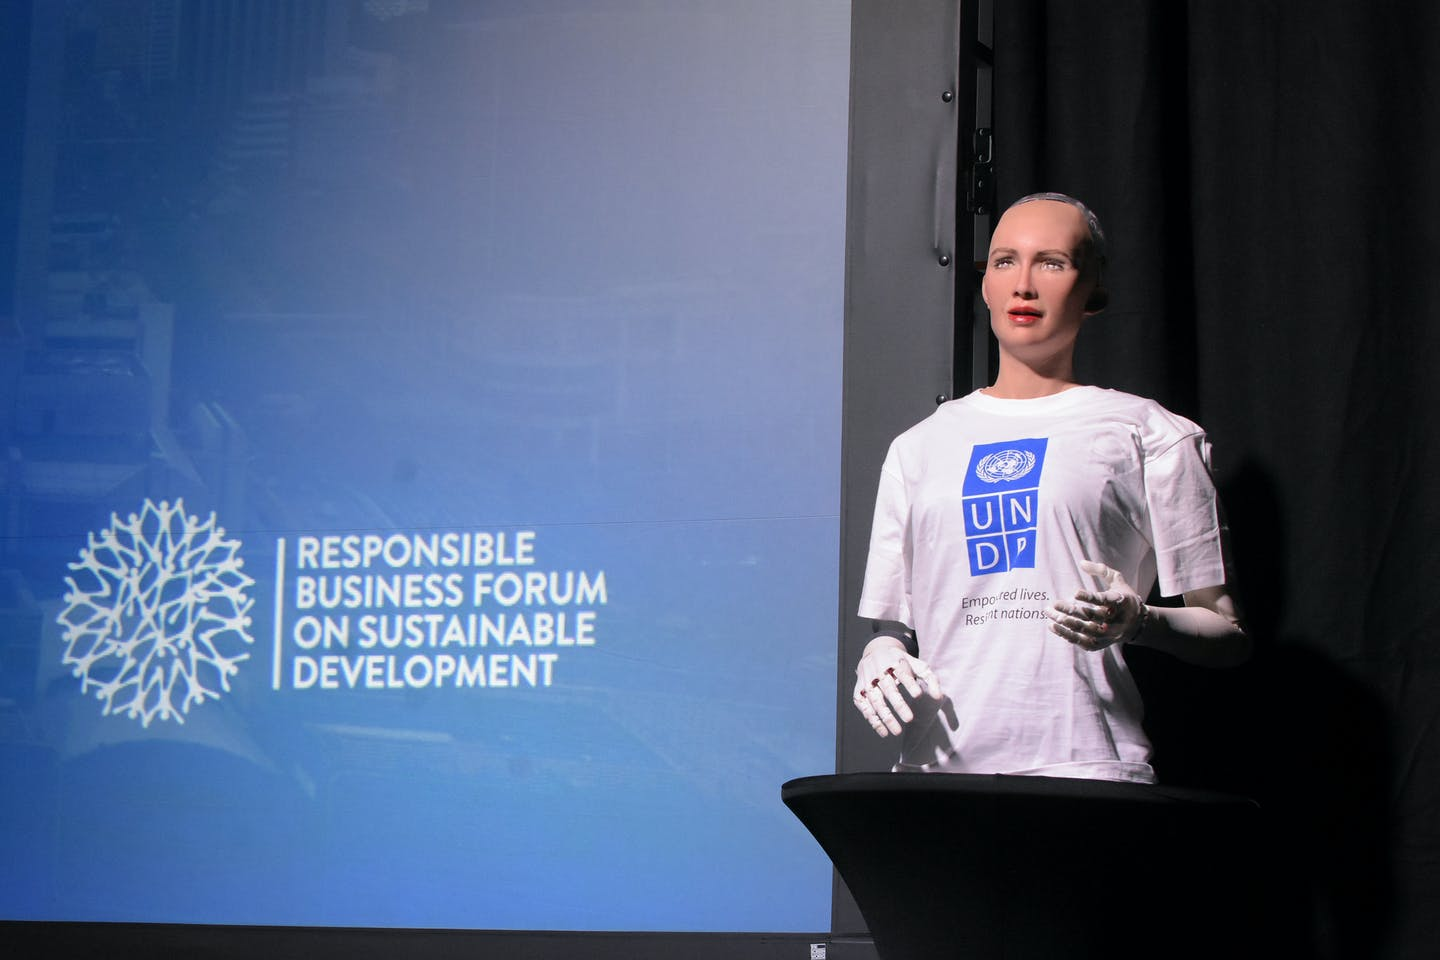 Sophia the robot unveiled as the UNDP's Innovation Champion at the Responsible Business Forum in Singapore, 2017